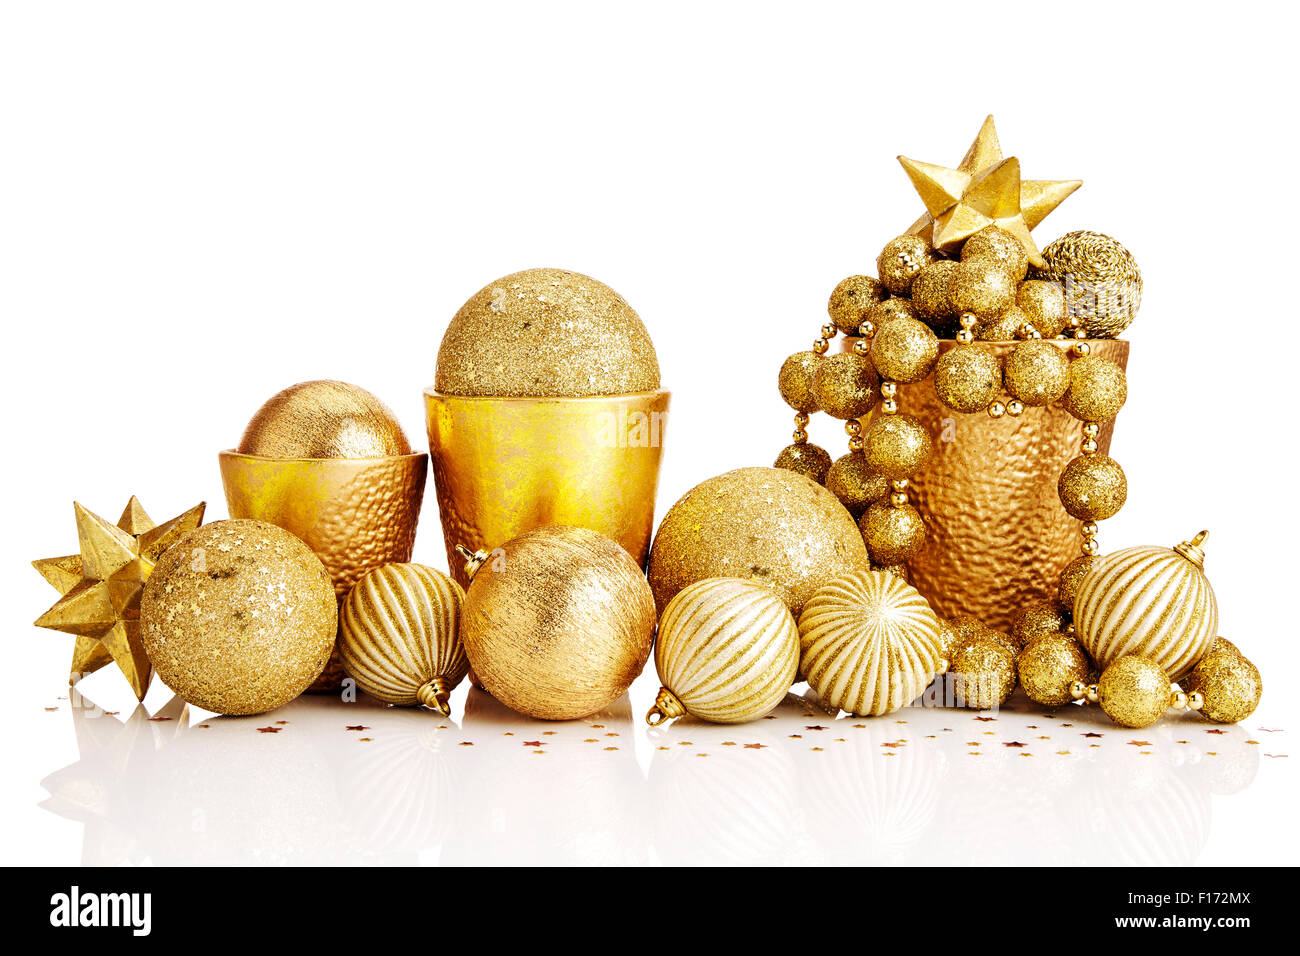 composition of gold christmas decorations on white background stock image - Gold Christmas Decorations